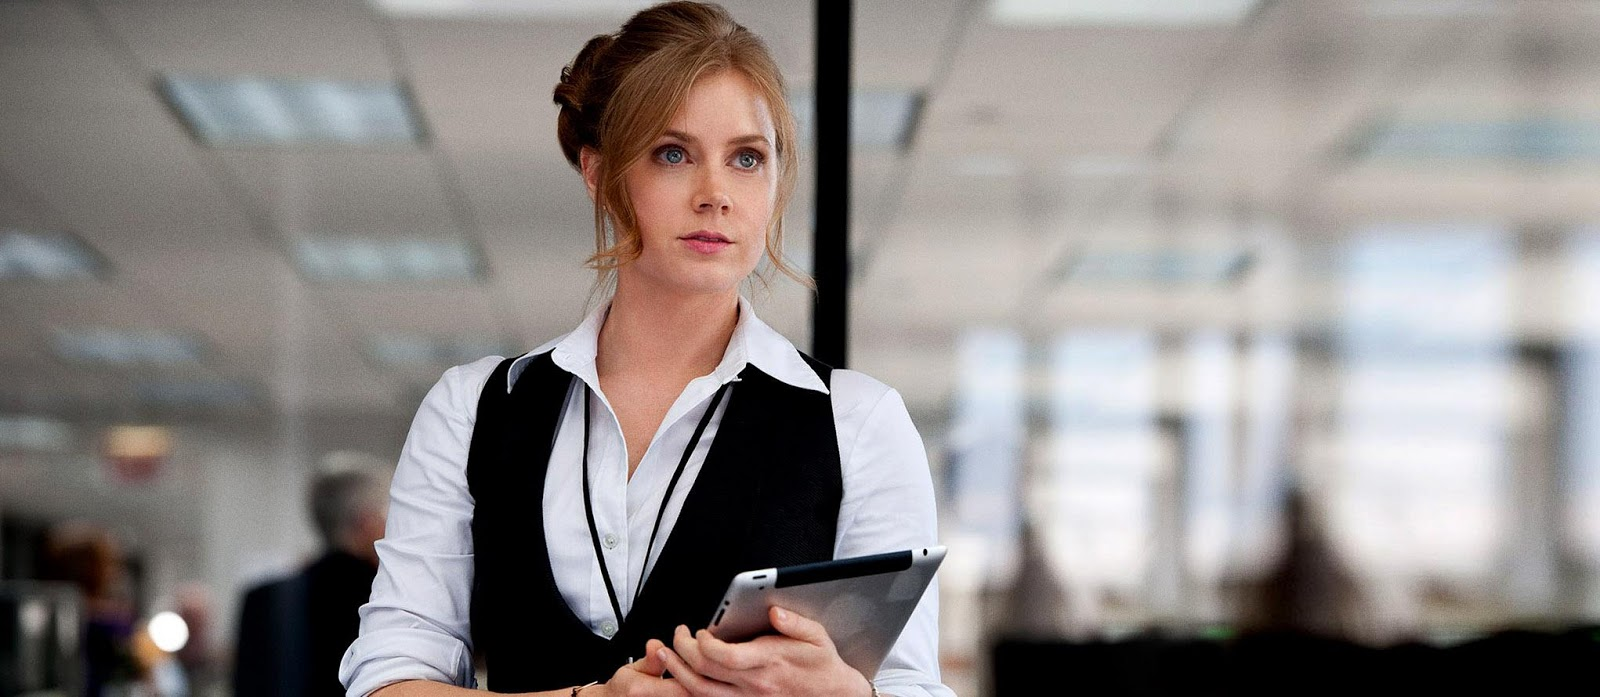 Amy Adams as Lois Lane in Man of Steel